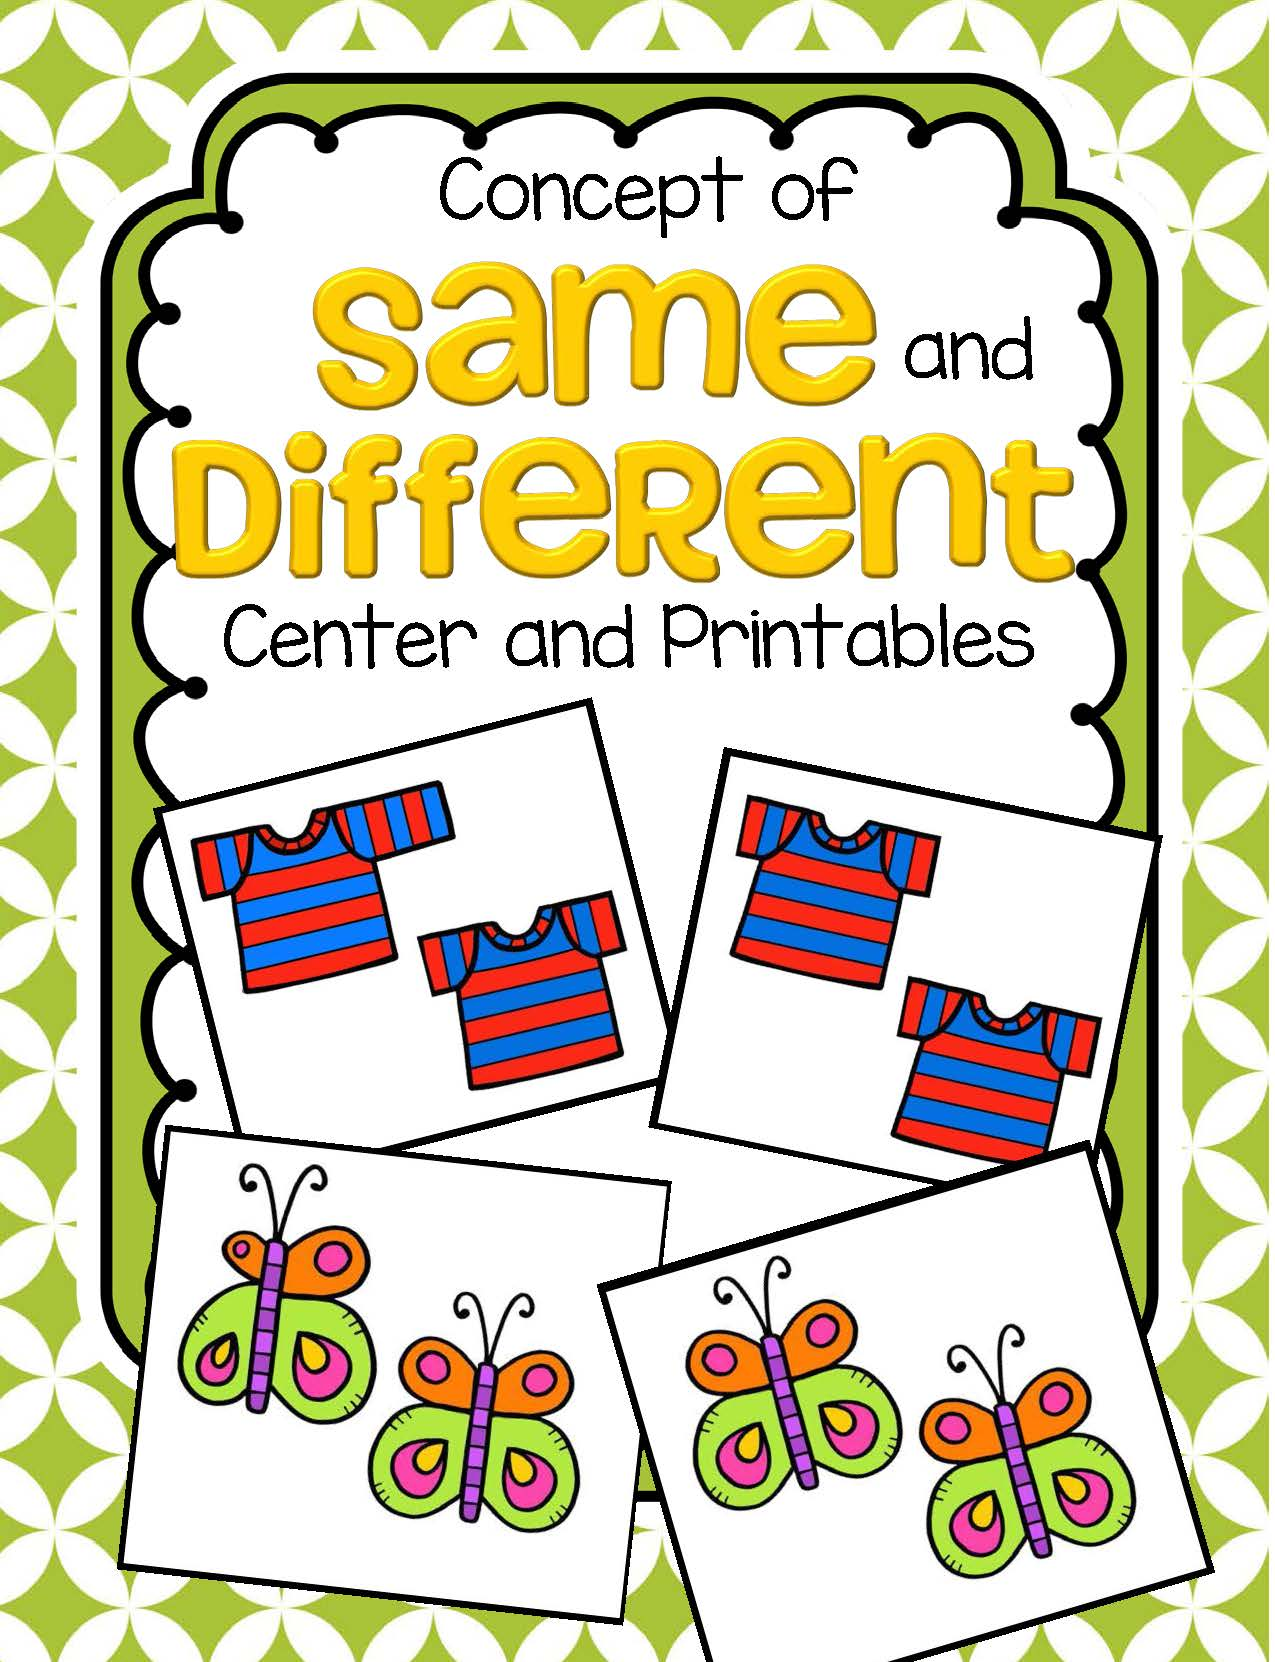 Same And Different Concept Center And Printables